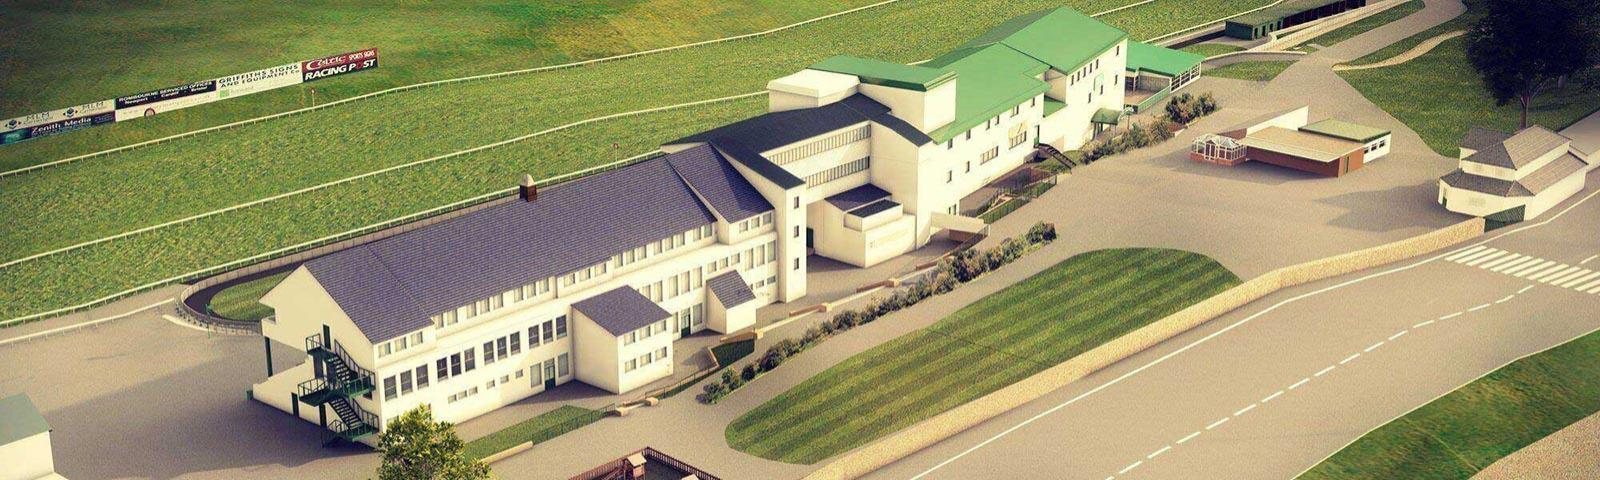 An aerial view of Chepstow Racecourse's main buildings.